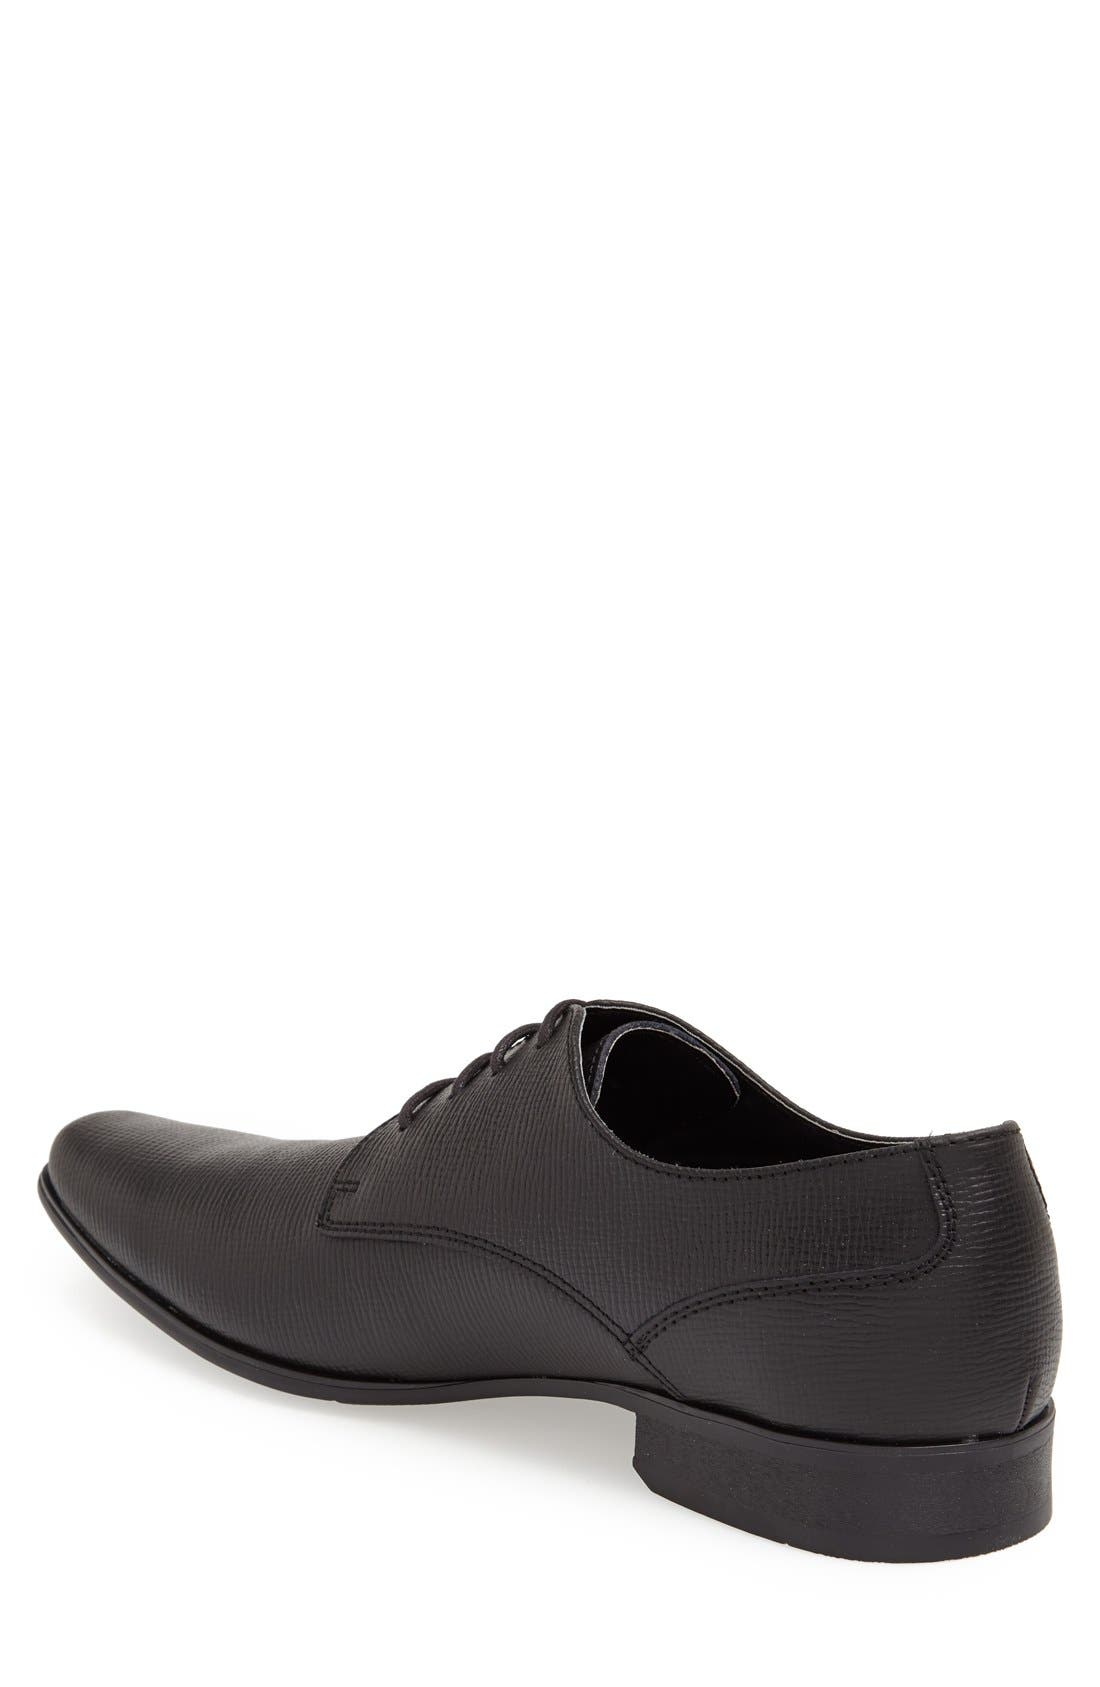 Alternate Image 2  - Calvin Klein 'Brodie' Plain Toe Derby (Men)